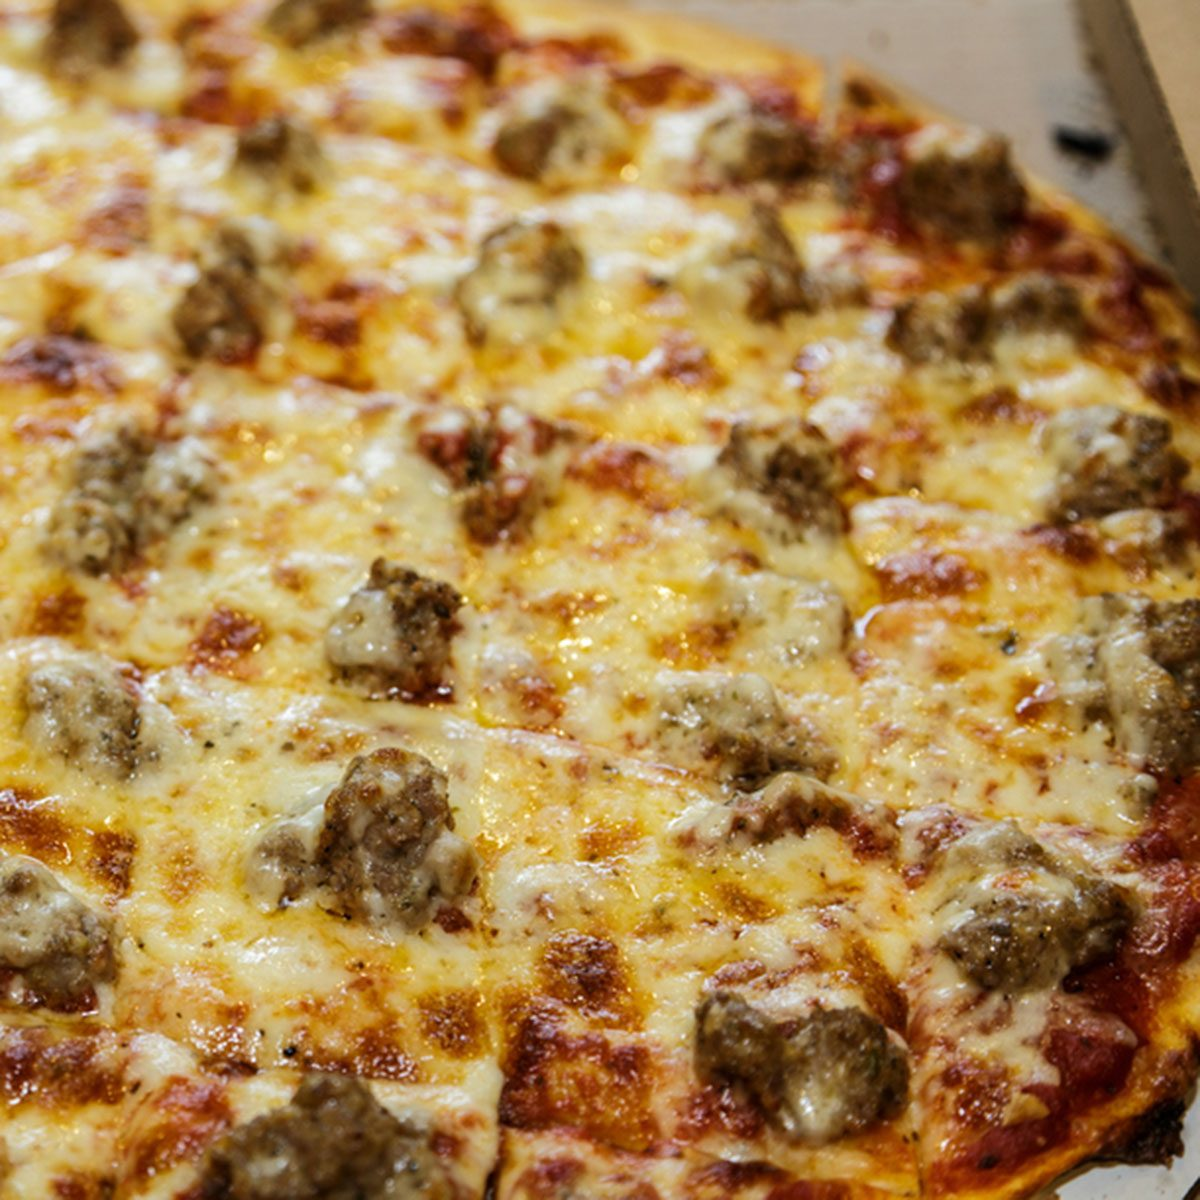 Hot Sausage Pizza in Take Out Box